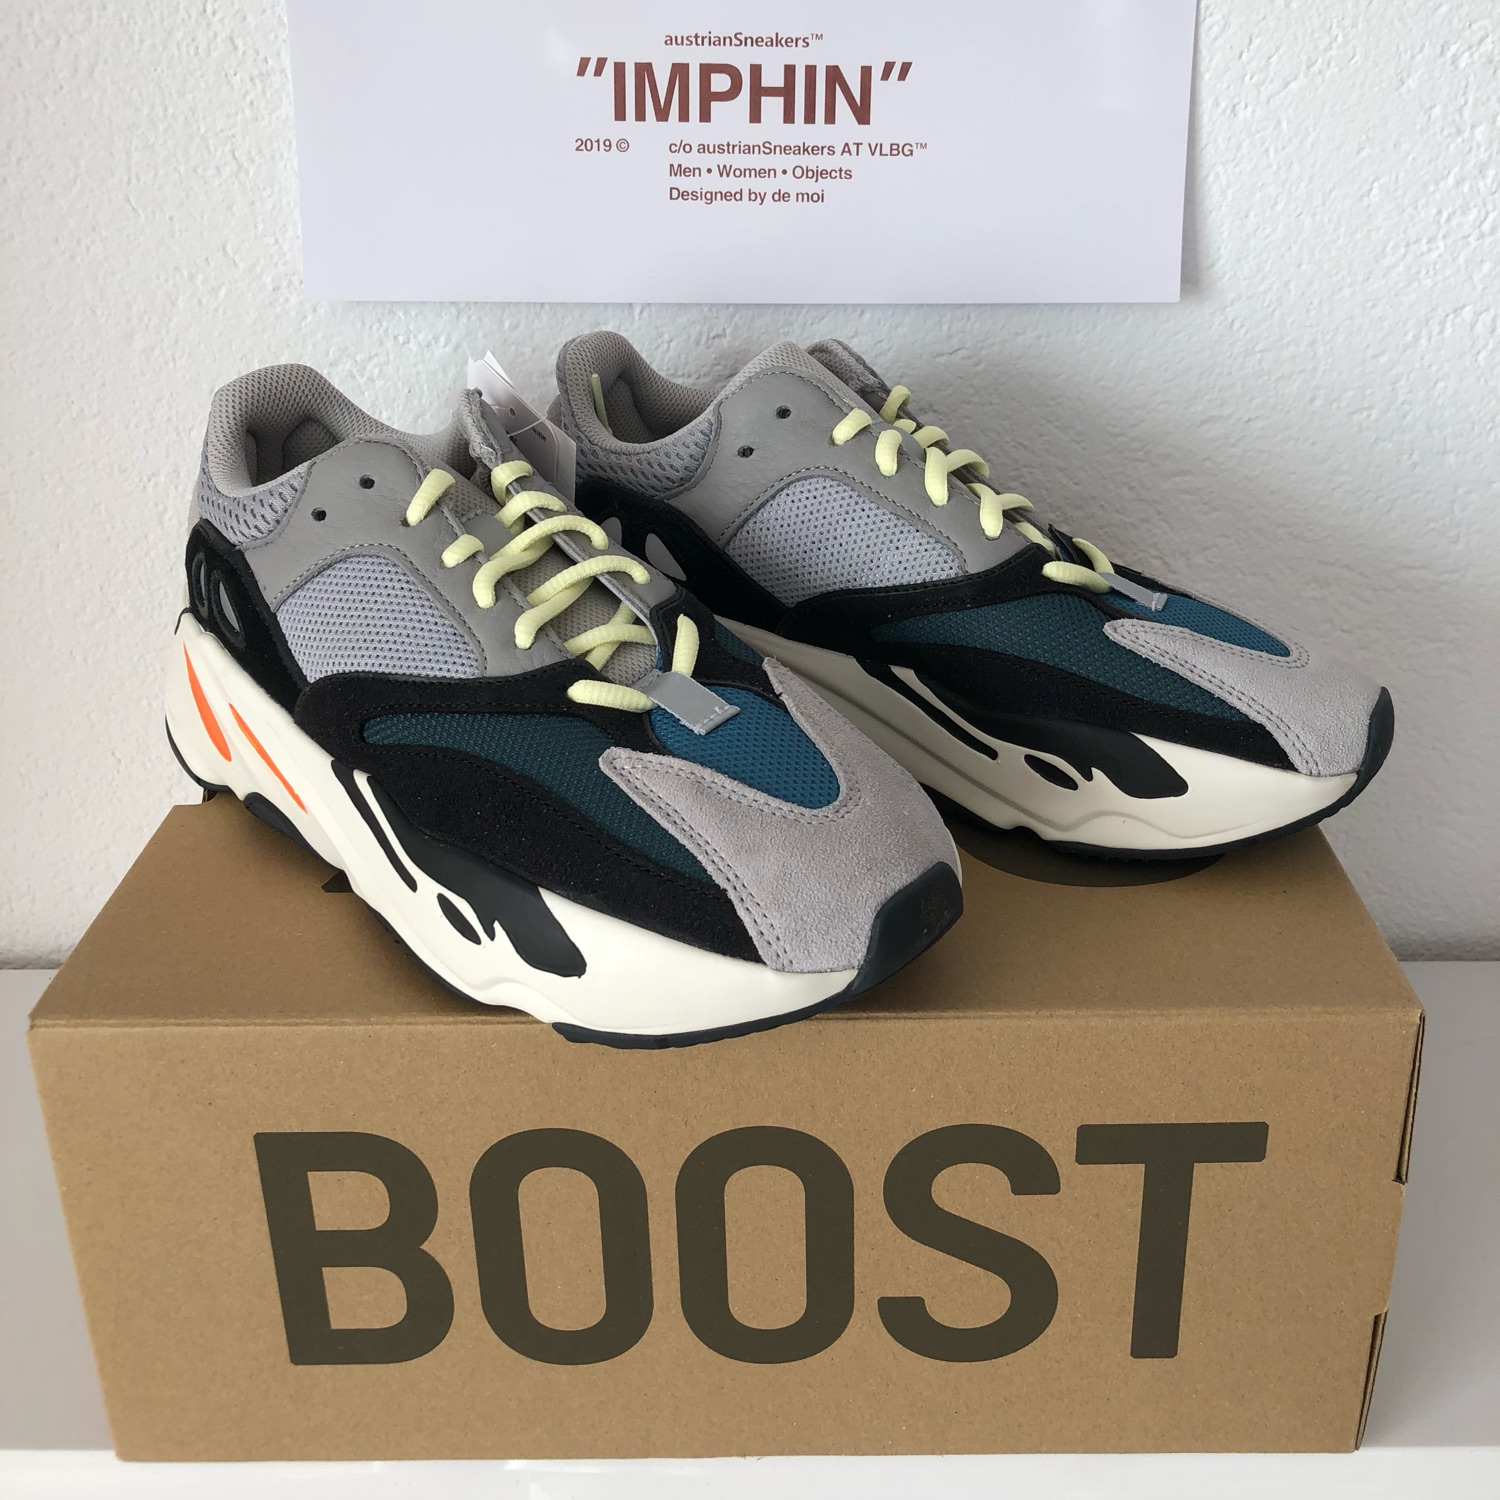 "Adidas Yeezy Boost 700 ""Wave Runner</p>                     </div> 		  <!--bof Product URL --> 										<!--eof Product URL --> 					<!--bof Quantity Discounts table --> 											<!--eof Quantity Discounts table --> 				</div> 				                       			</dd> 						<dt class="